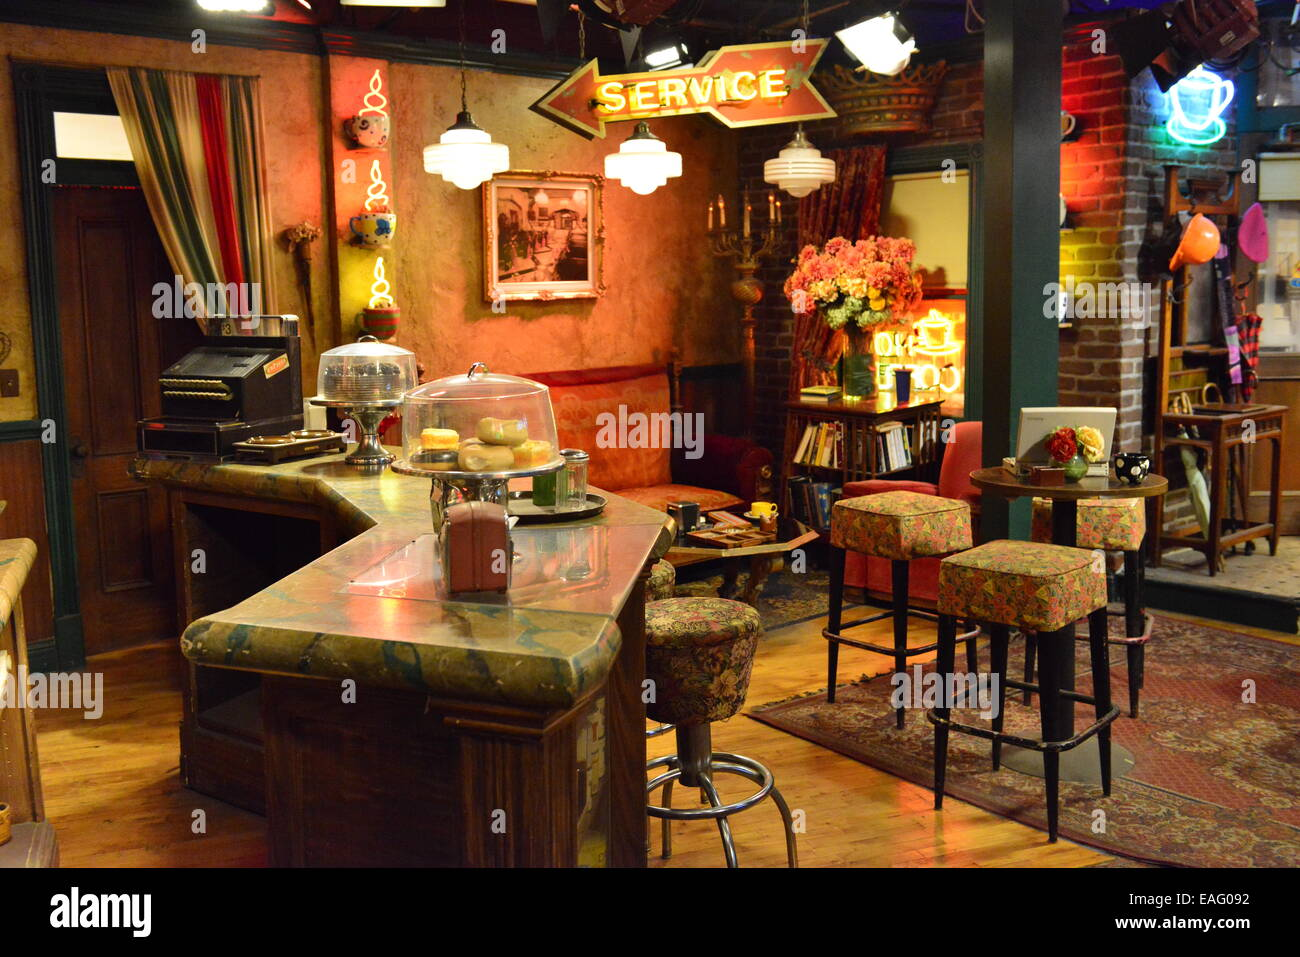 Park Lighting Floor Lamps Warner Brothers Set For Friends Central Perk Bar Stock